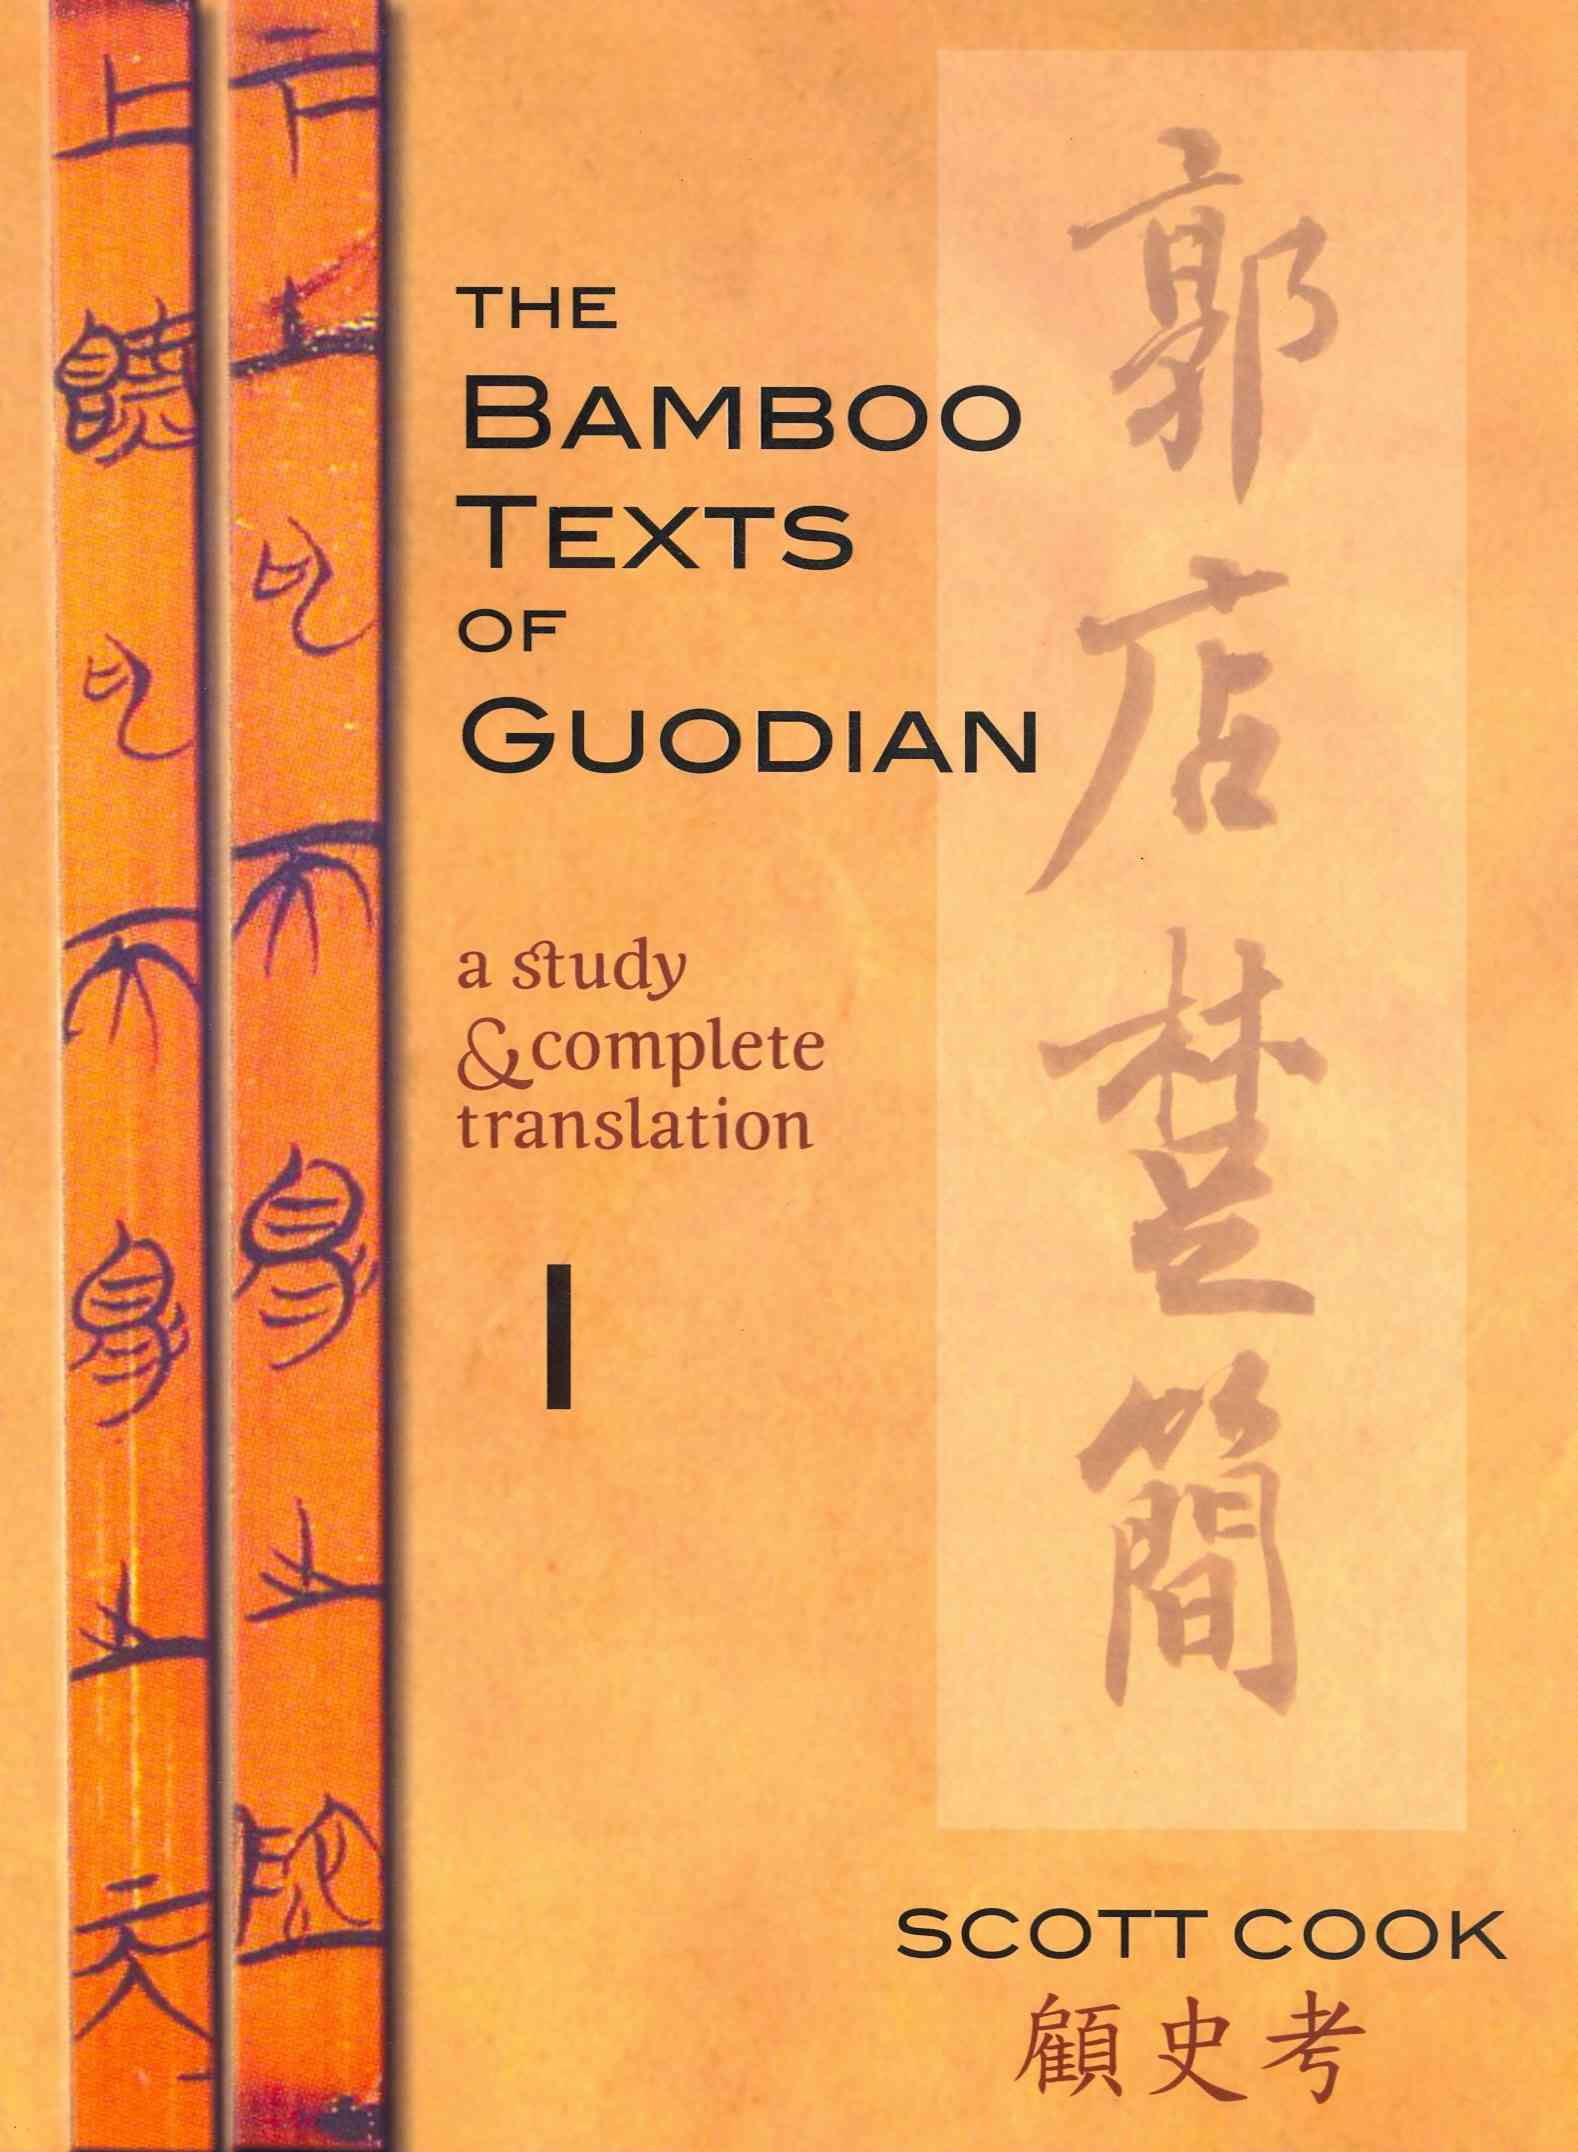 The Bamboo Texts of the Guodian By Cook, Scott (TRN)